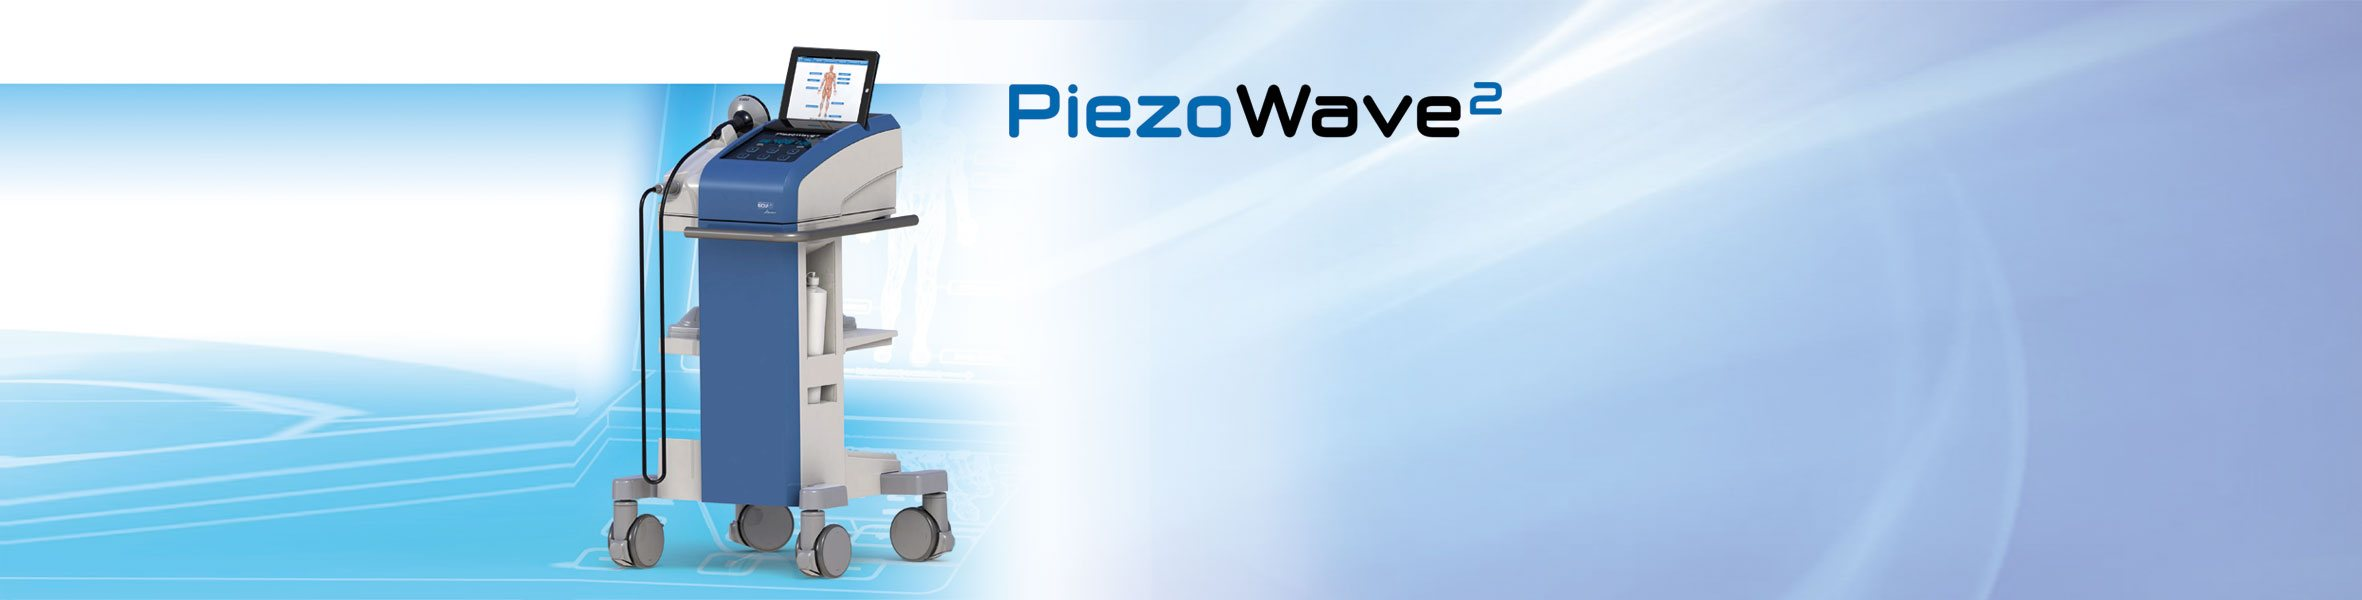 piezowave2FIX Home